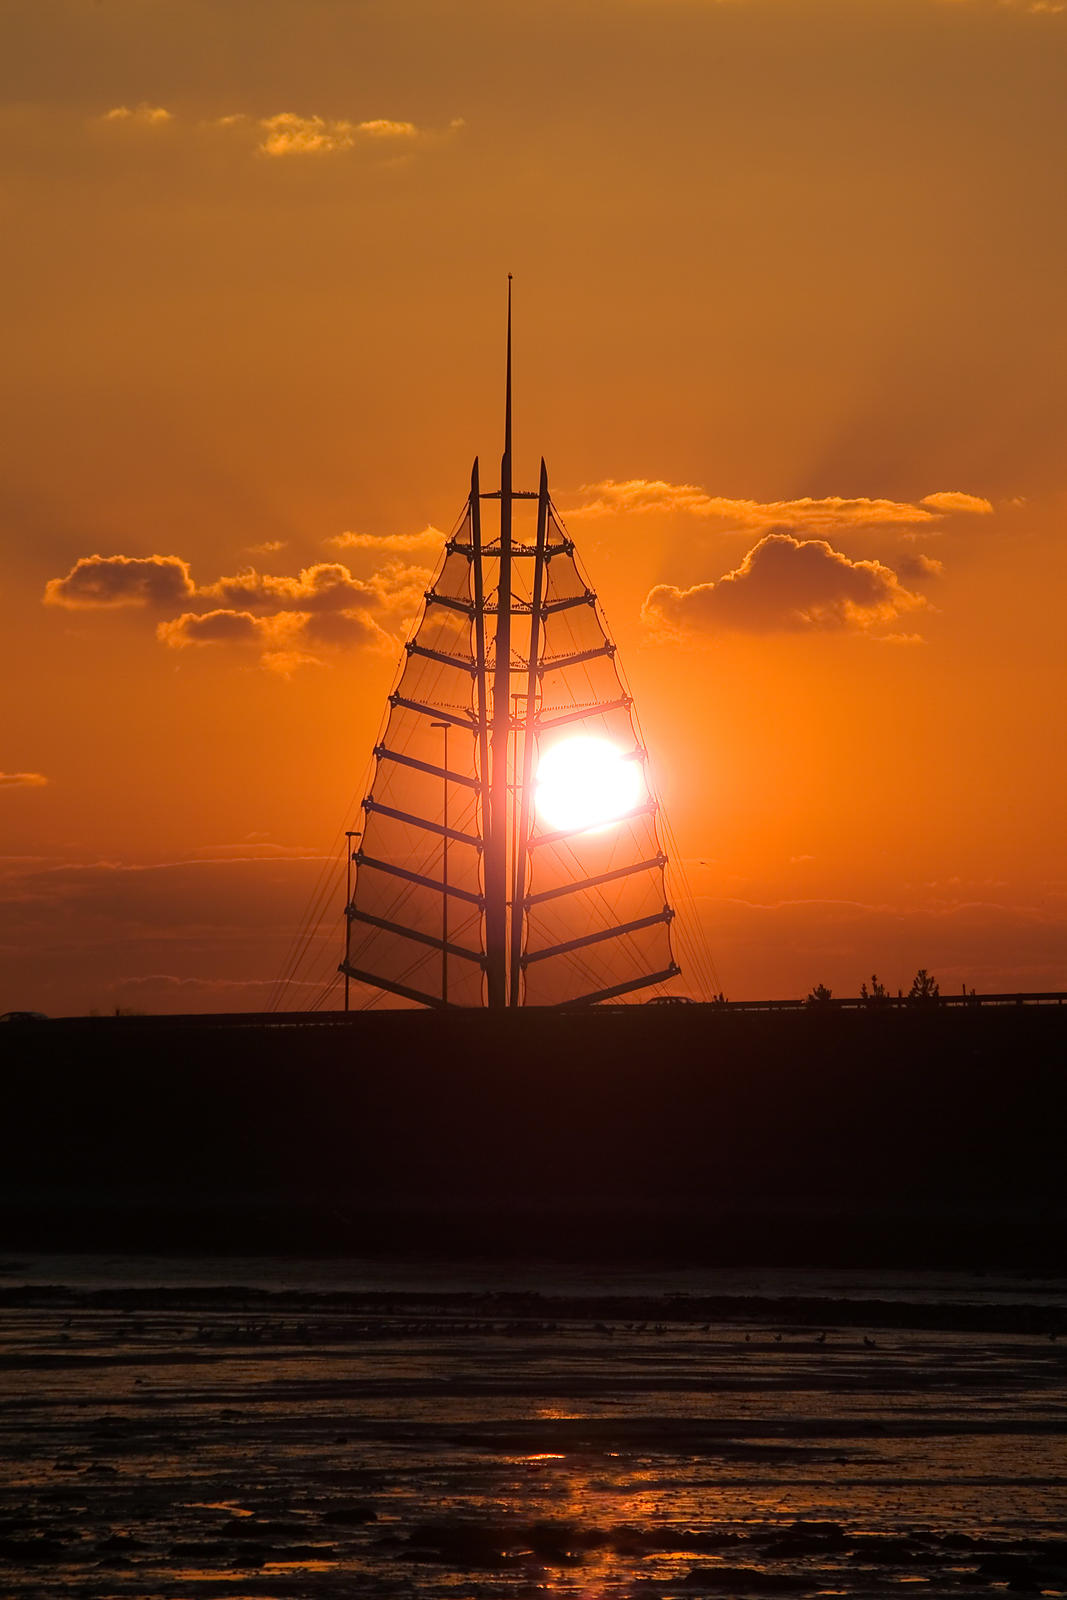 Sails of the South, Sunset